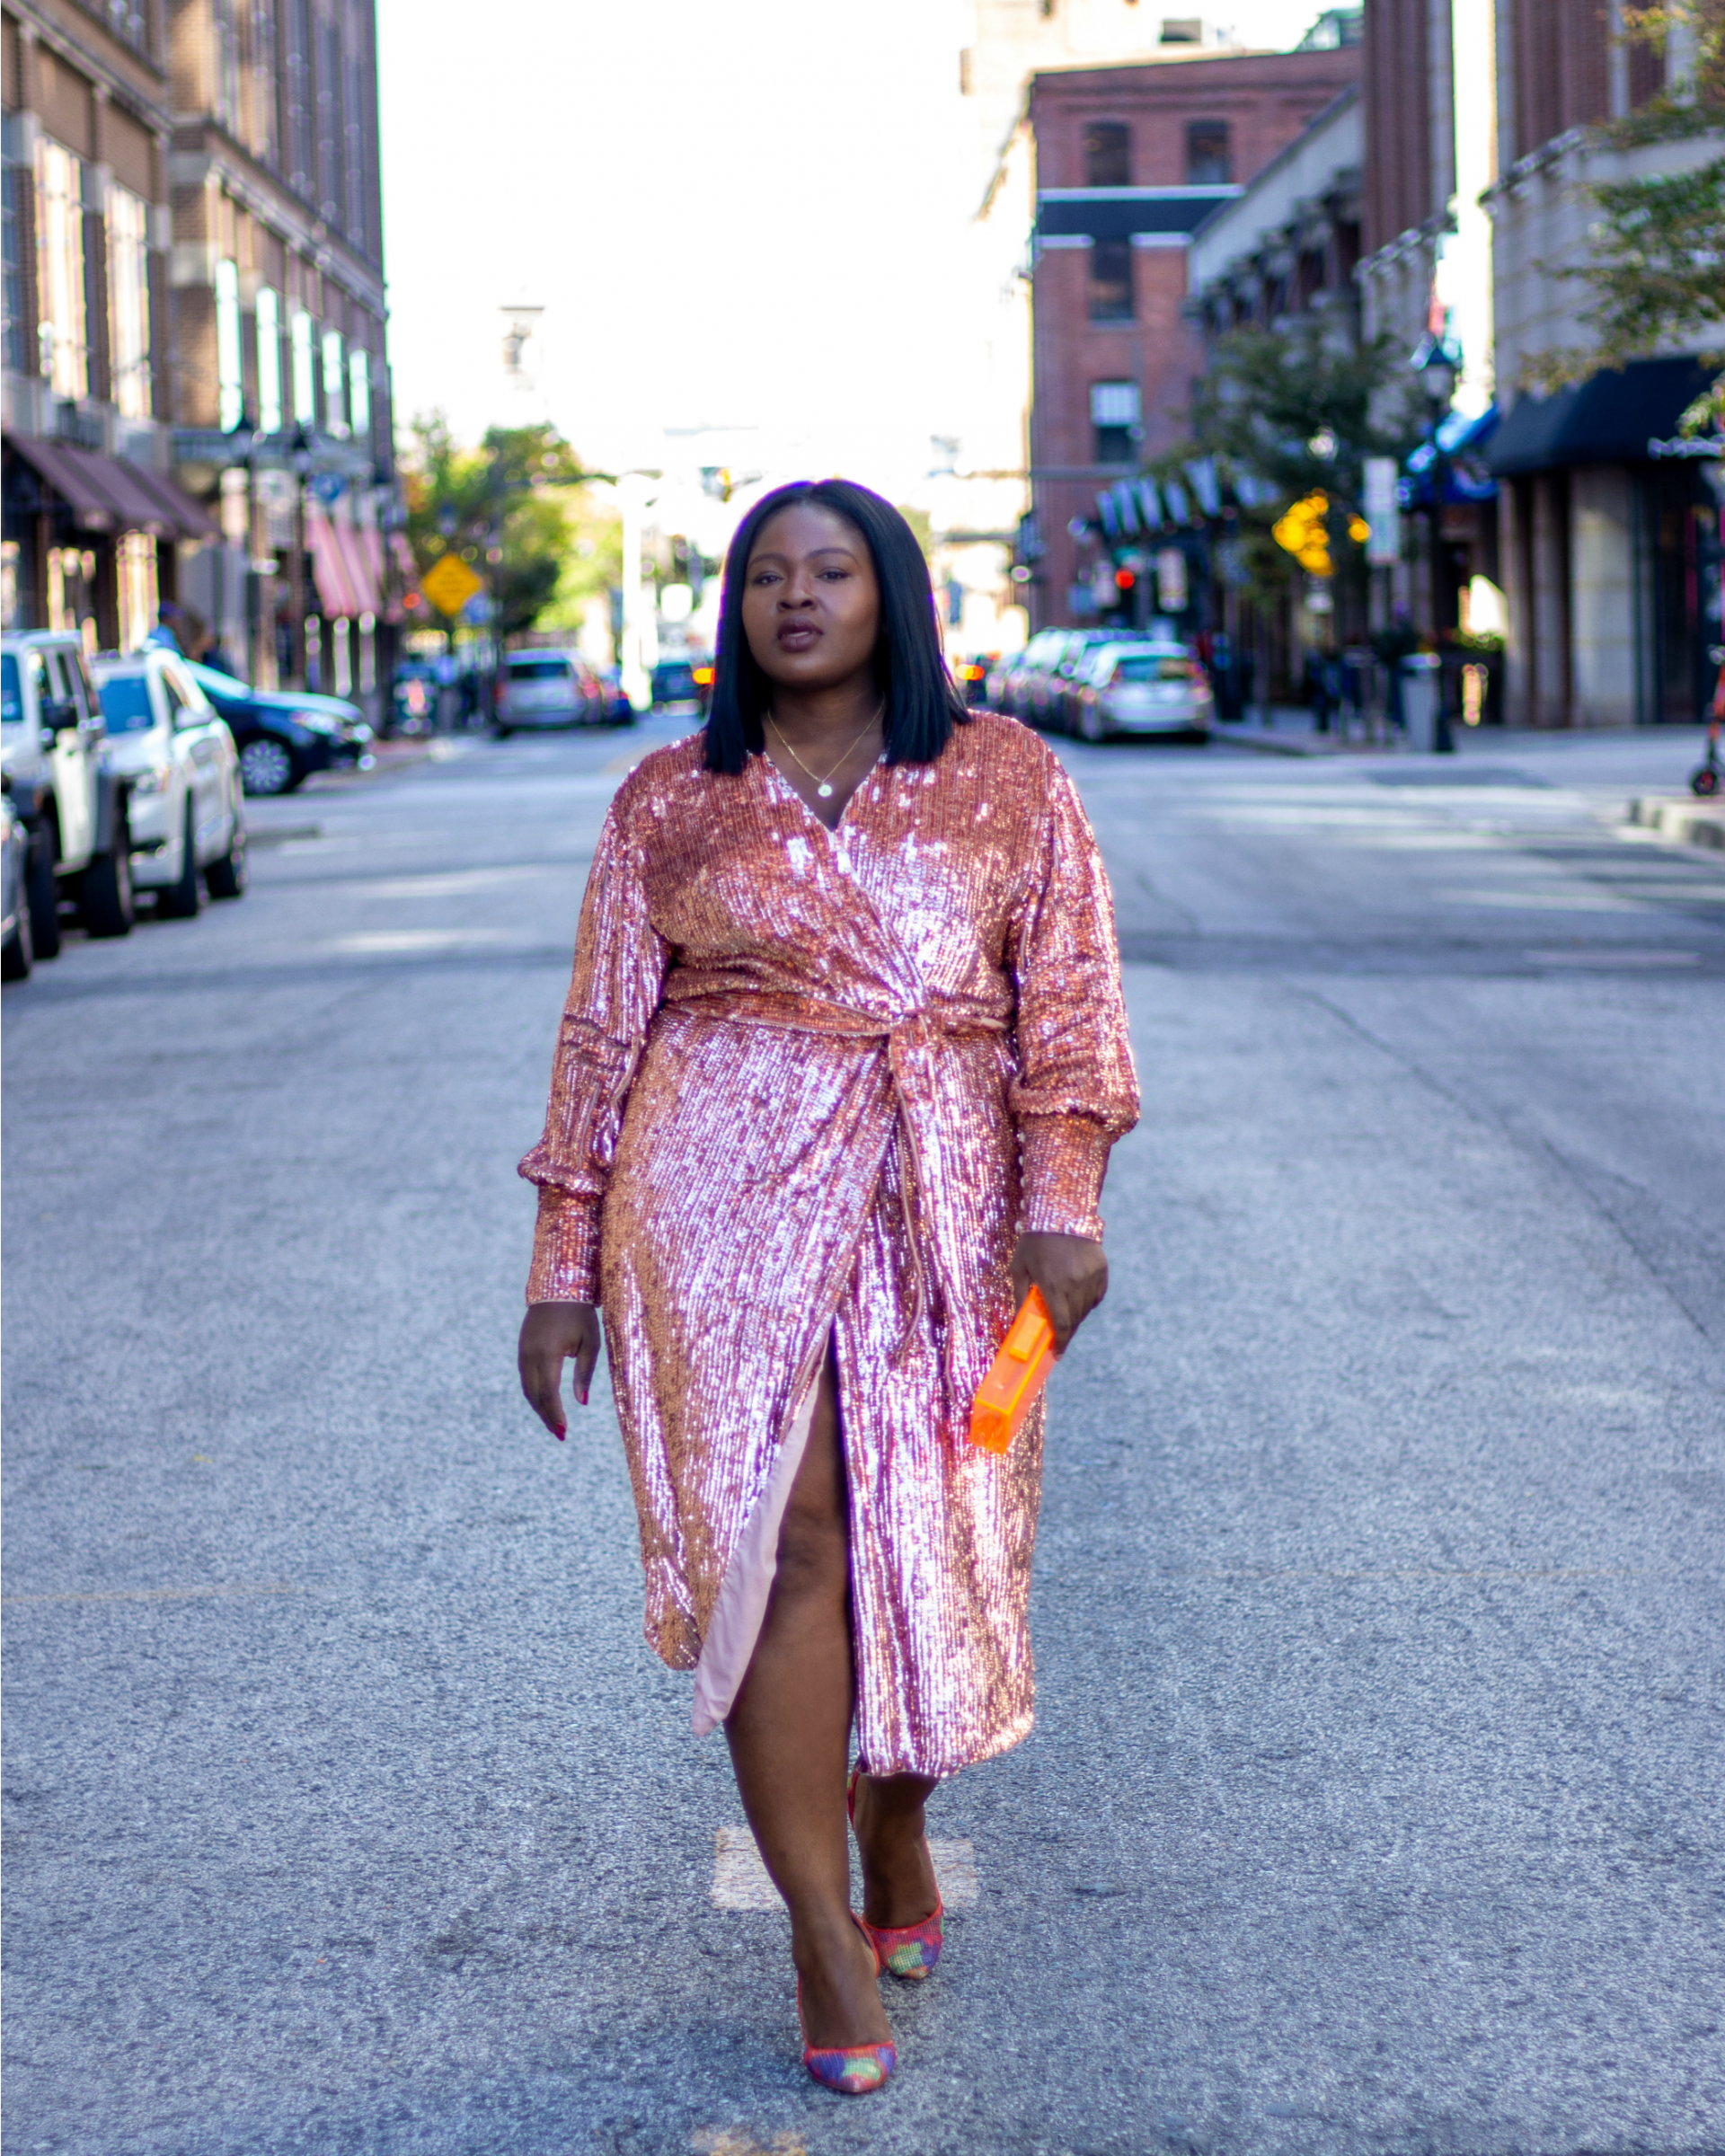 _Where To Find The Best Holiday Party Dresses in 2019 from Supplechic a lifestyle and fashion blog based in Baltimore-01